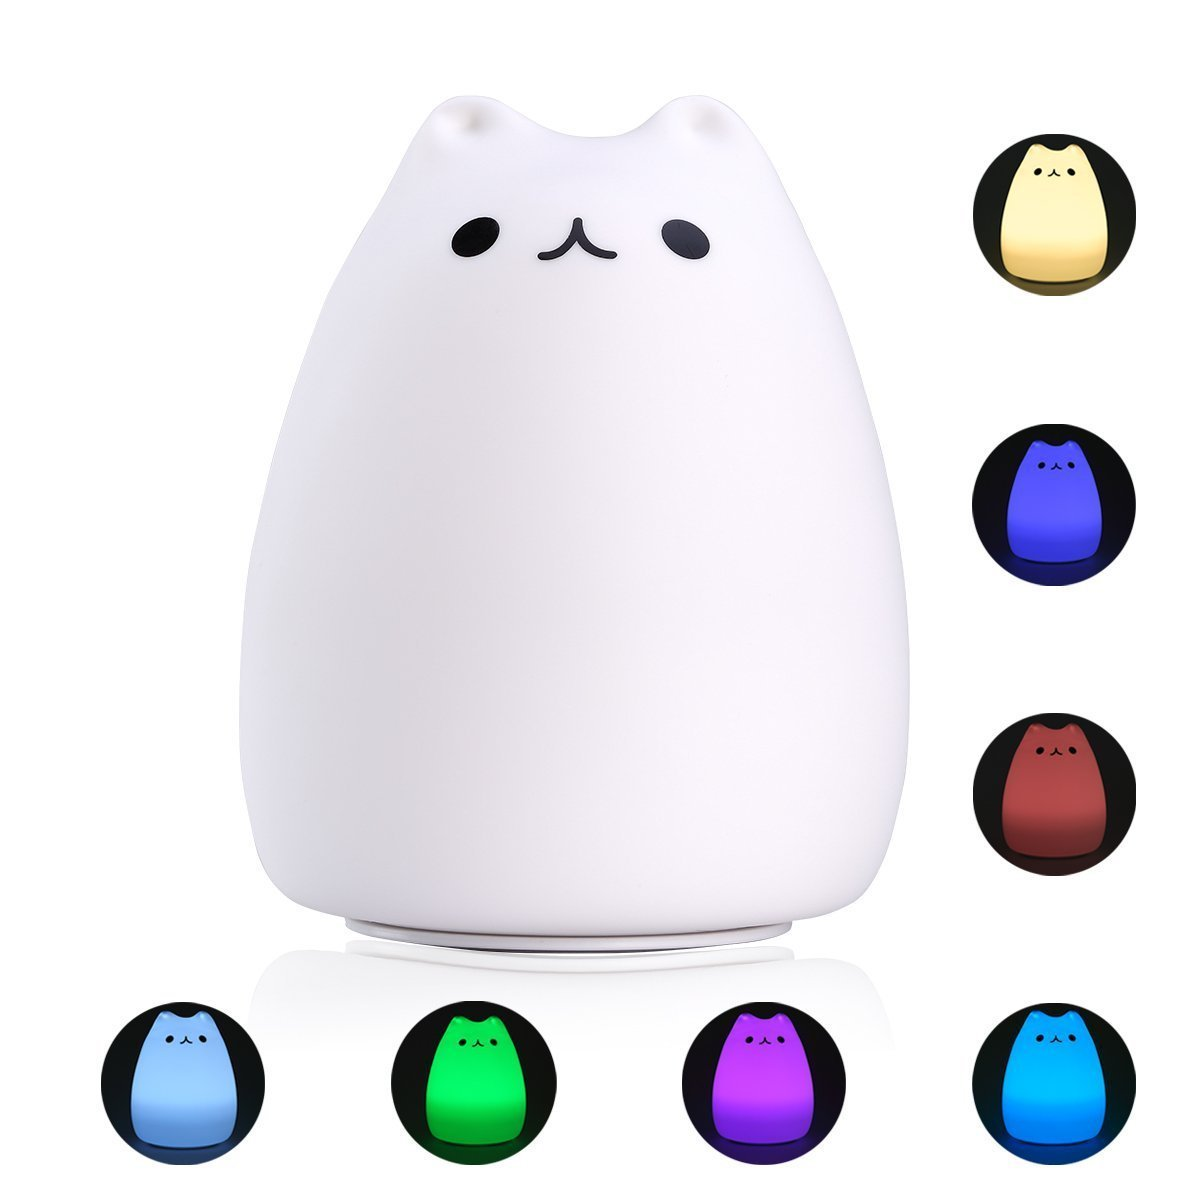 Cat Night Lights S Andg Night Light Cute Smile Cat Silicon Led Desk Lamp With